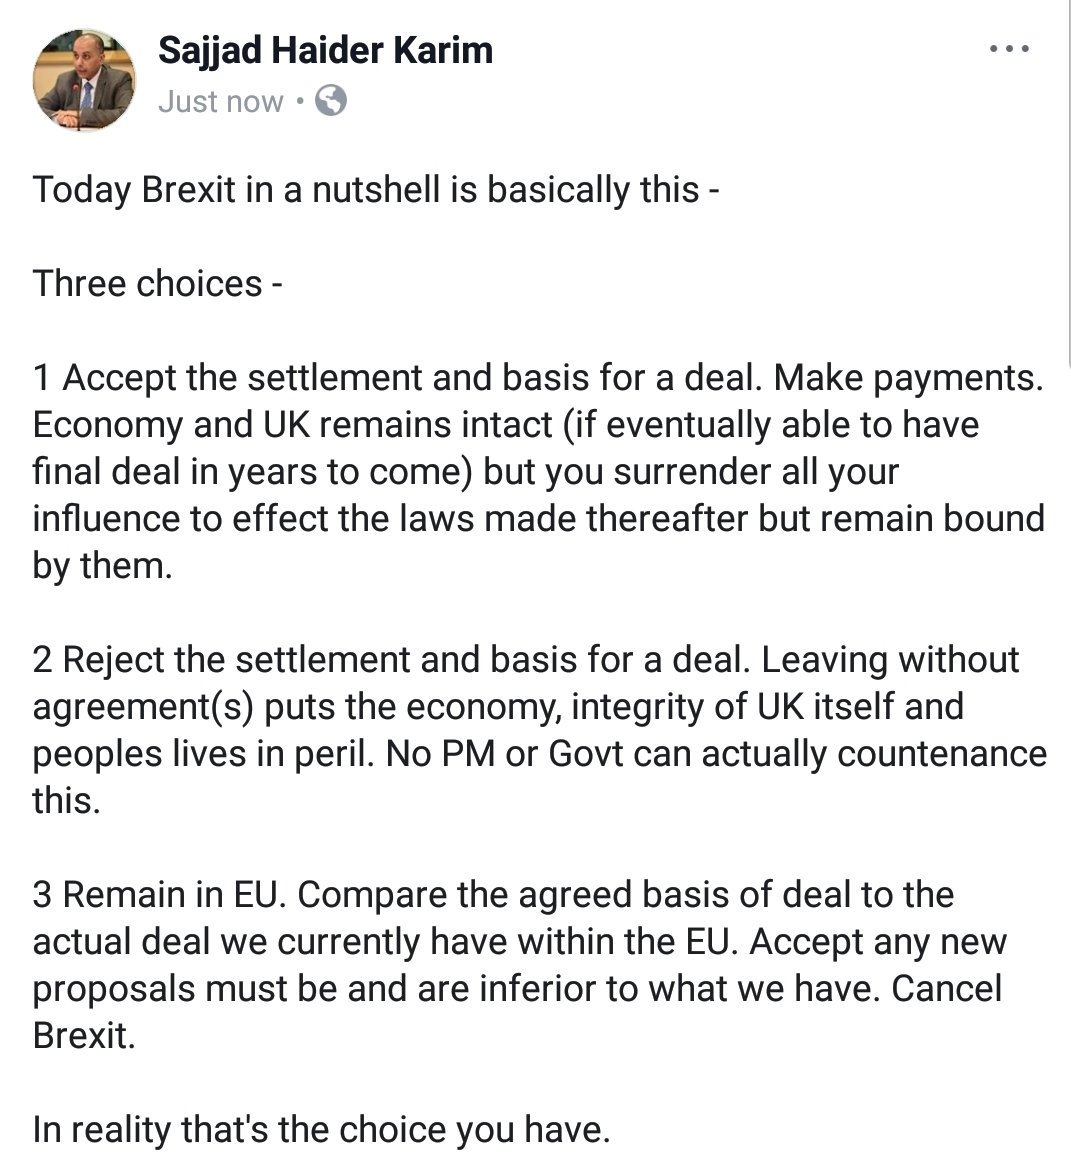 Able Accounts Offer New Choice For >> Sajjad Karim Mep Conservative On Twitter Brexit In A Nutshell 15